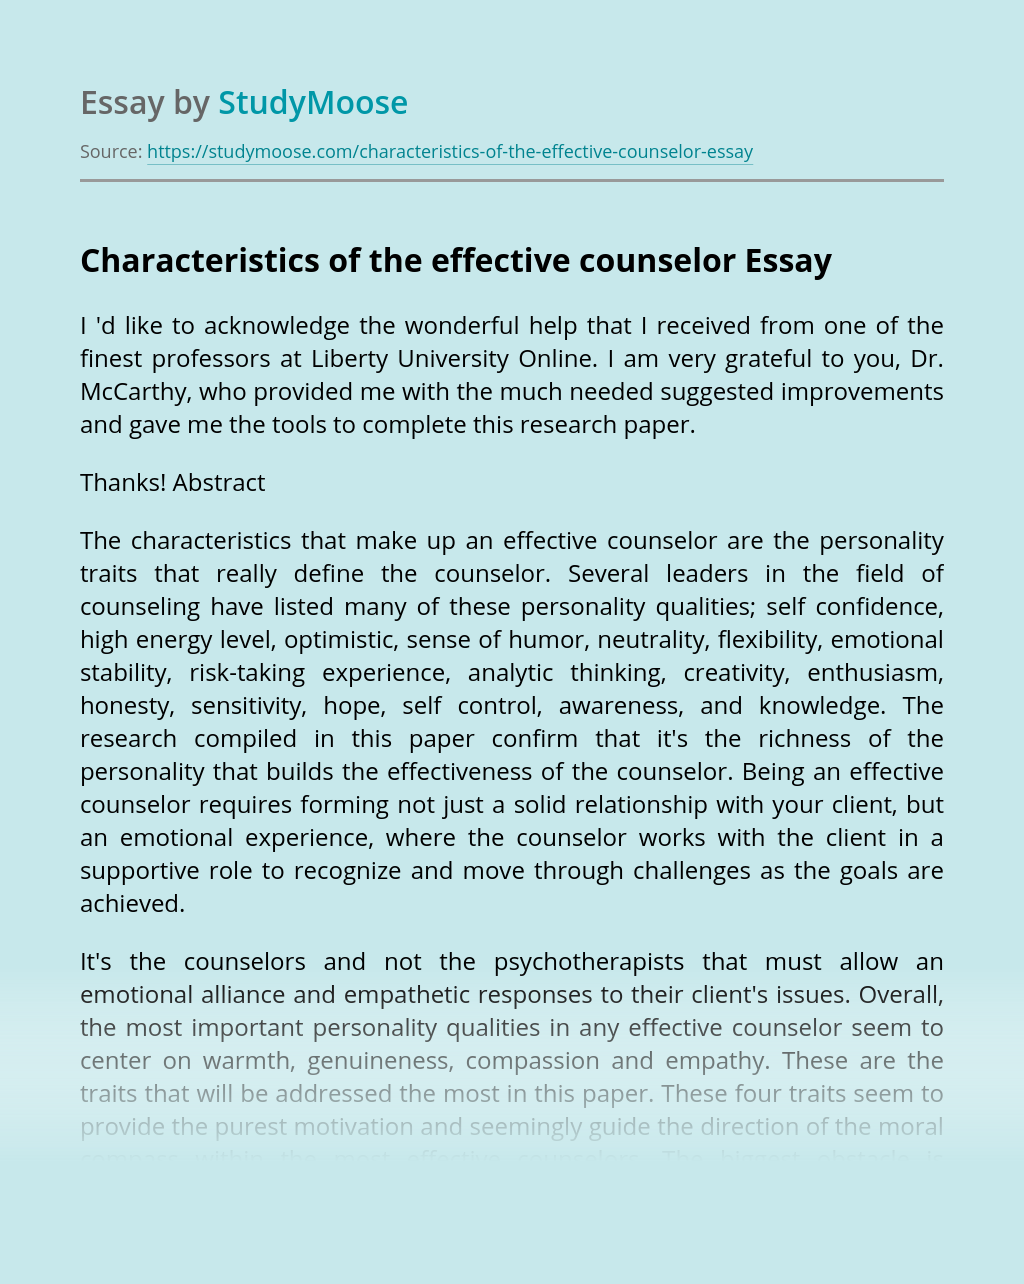 Characteristics of the effective counselor